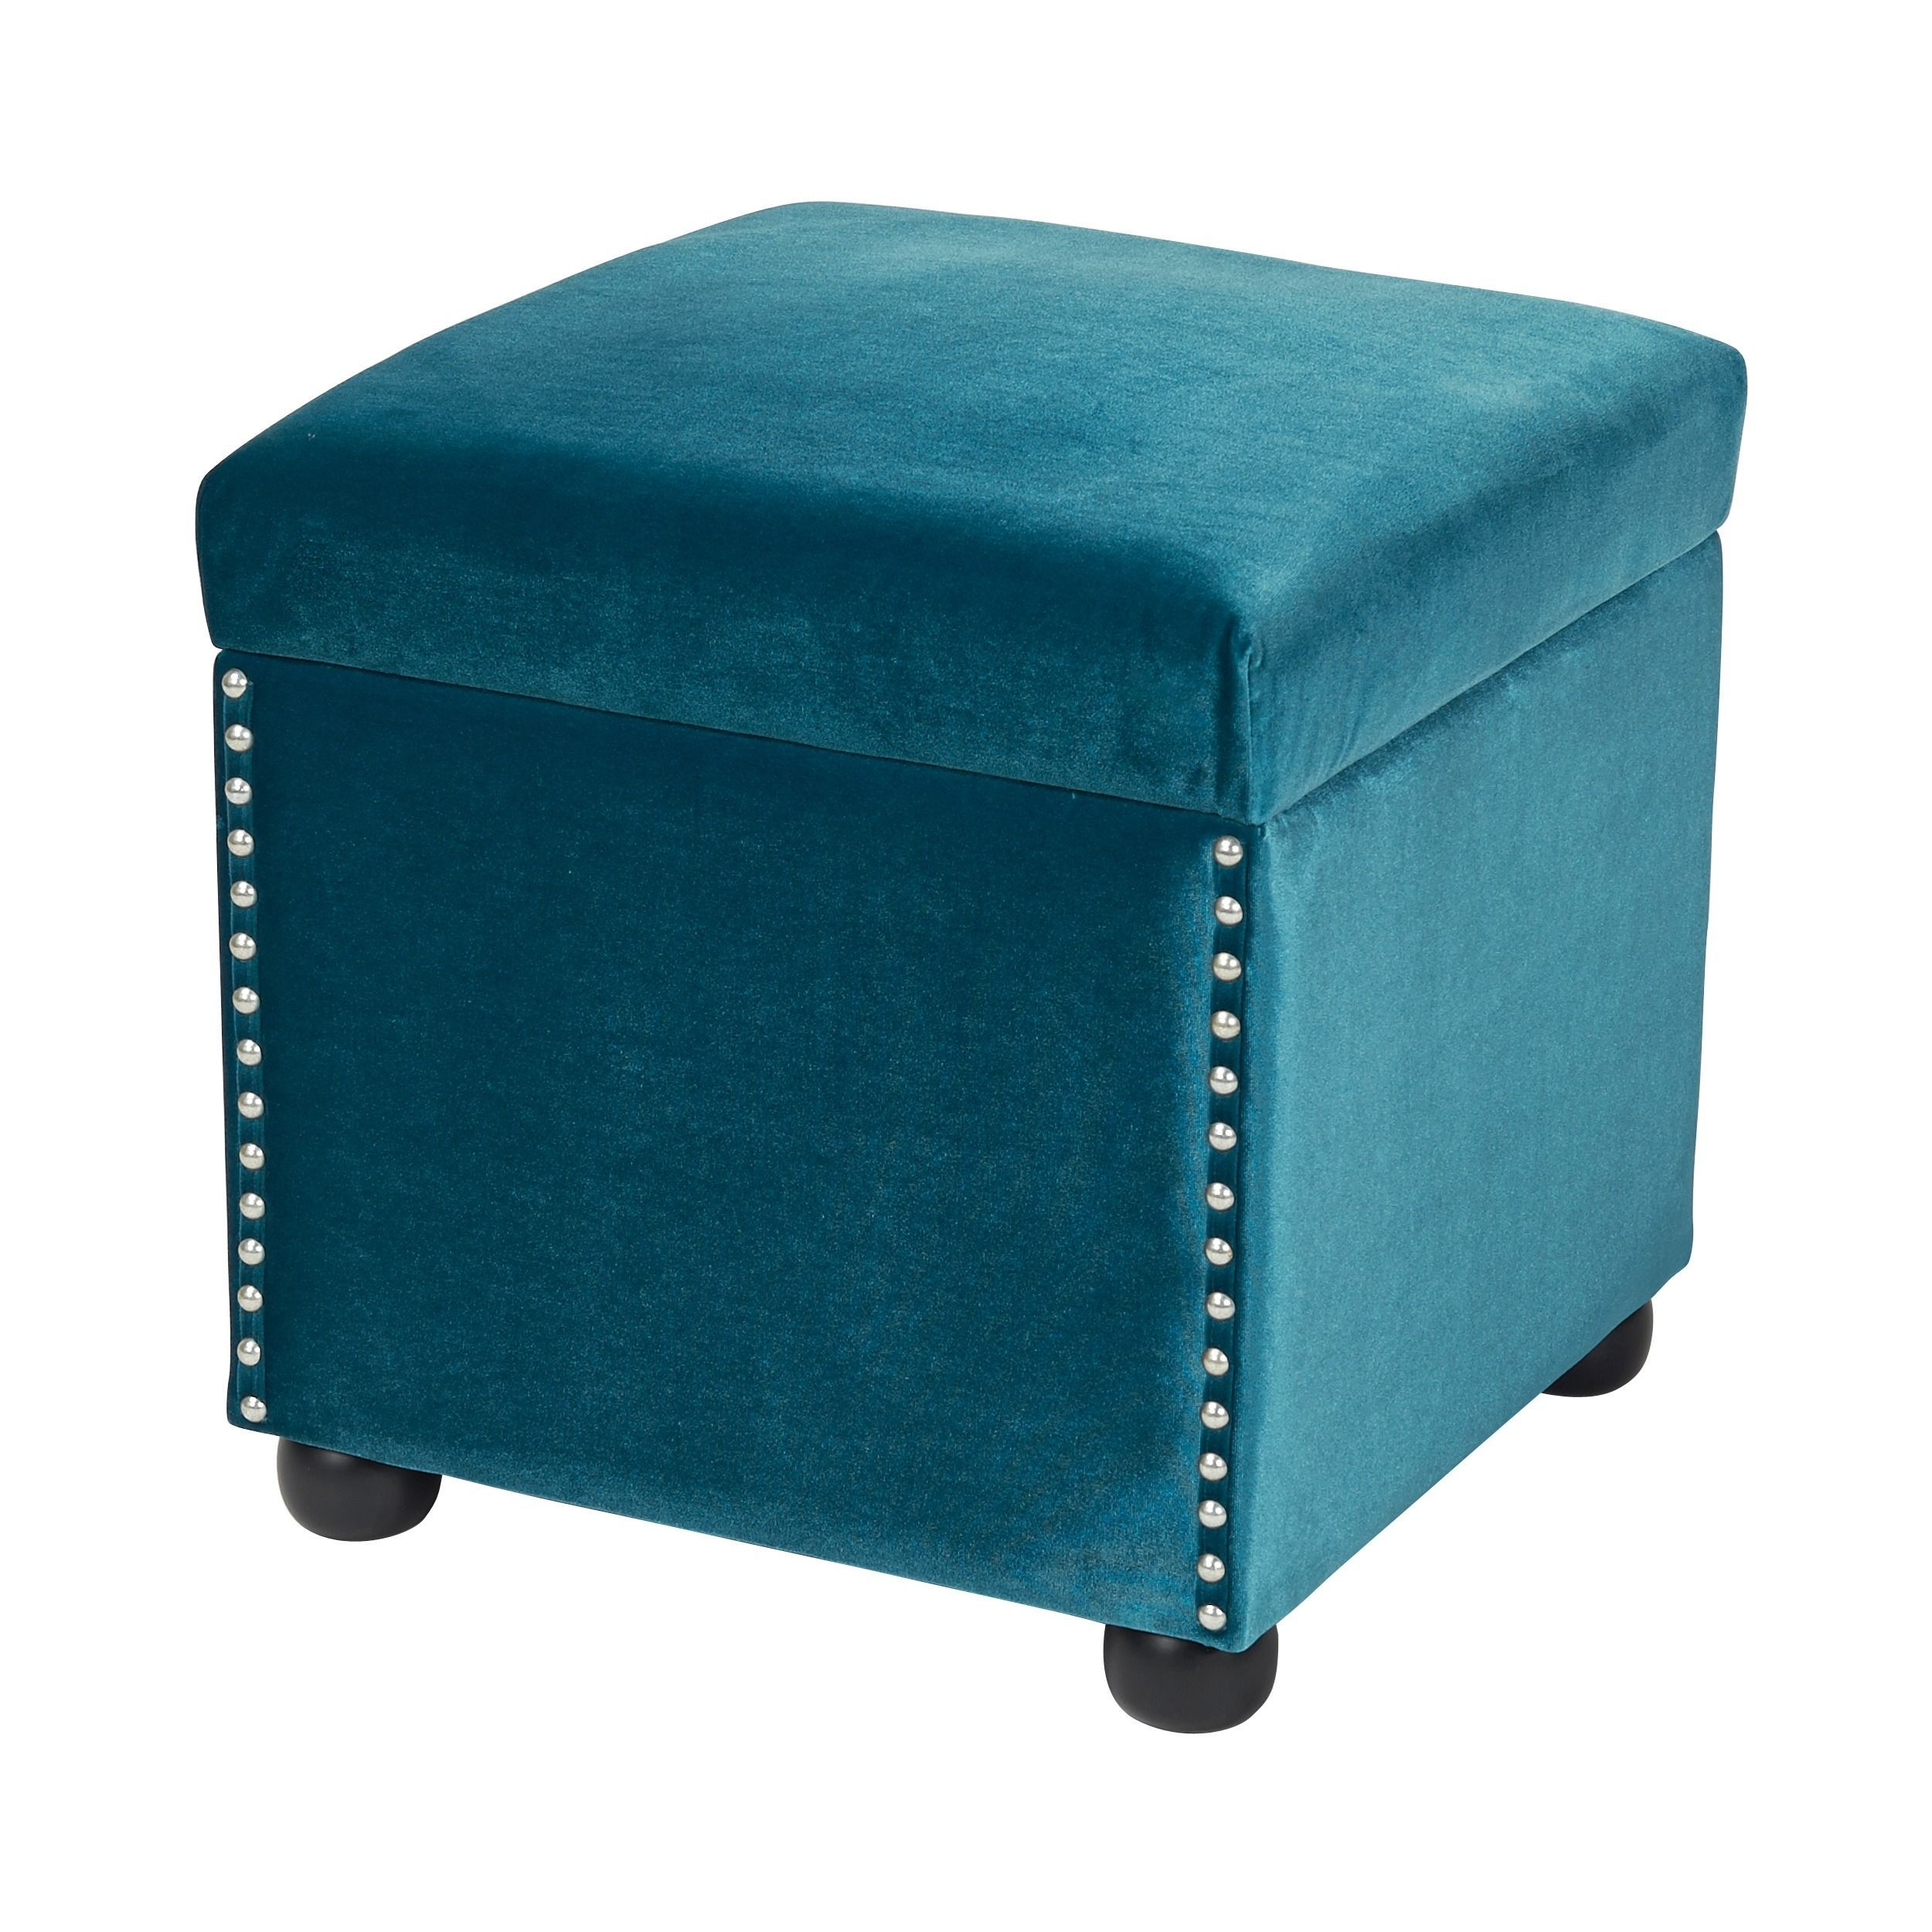 Maximize space in your home and reward yourself with this attractive found it at wayfair fusion storage cube ottoman solutioingenieria Images